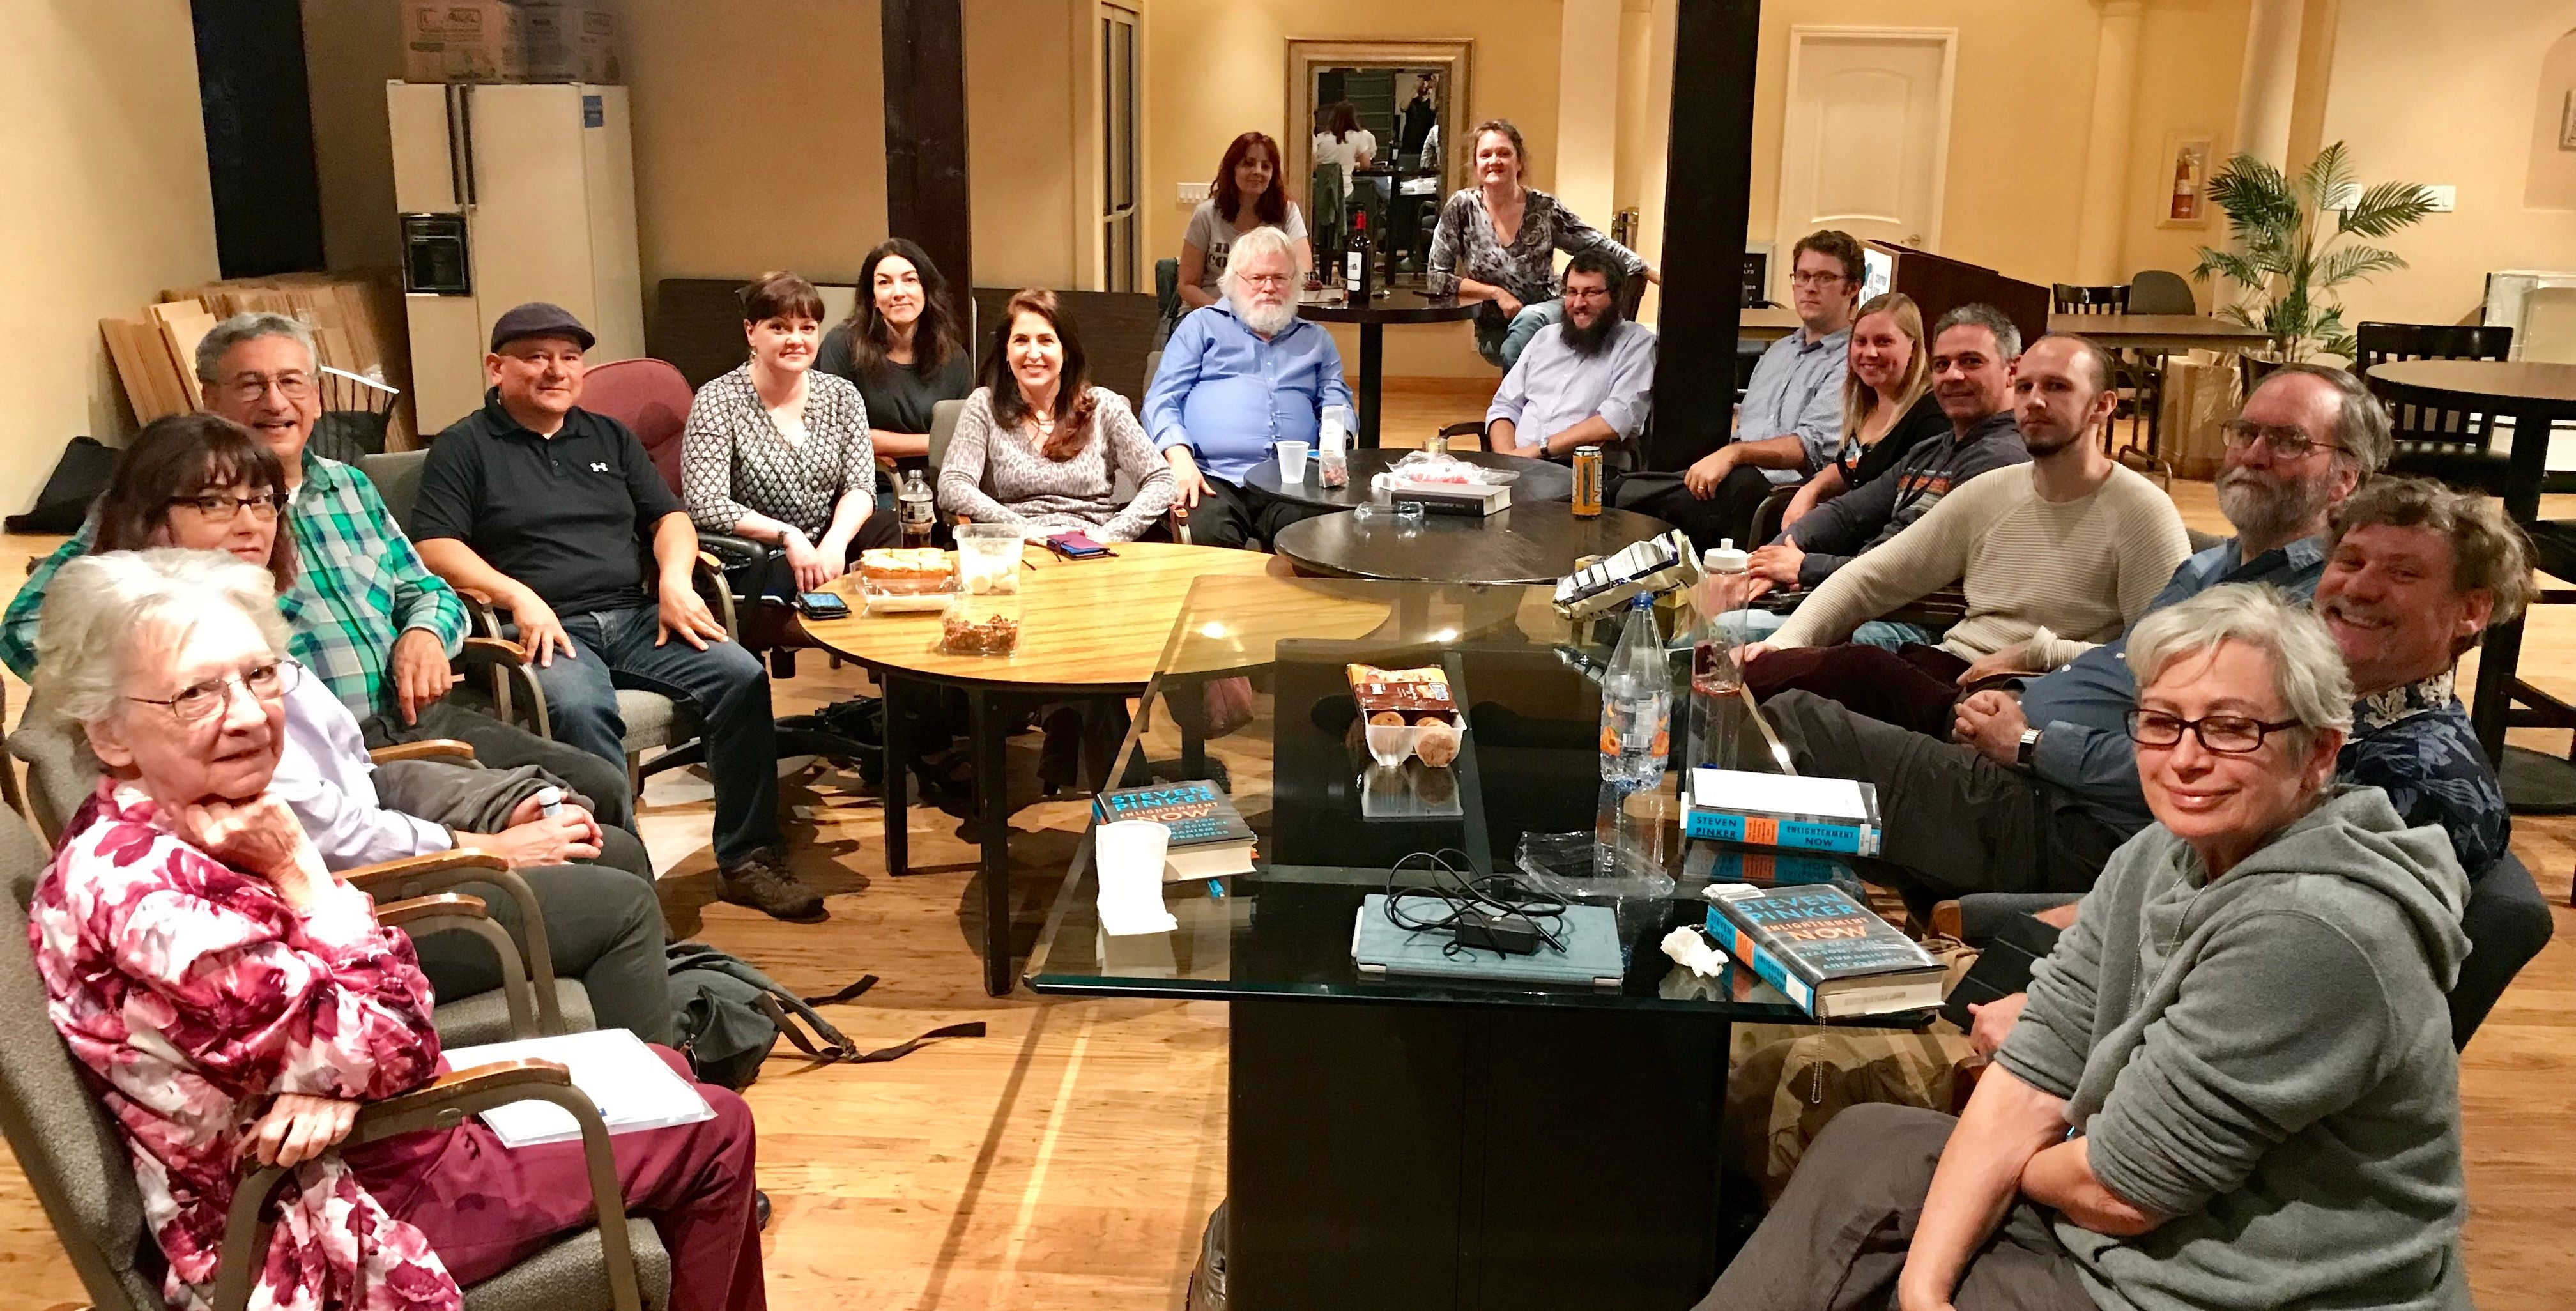 The Greater L.A. Skeptics Meetup Group